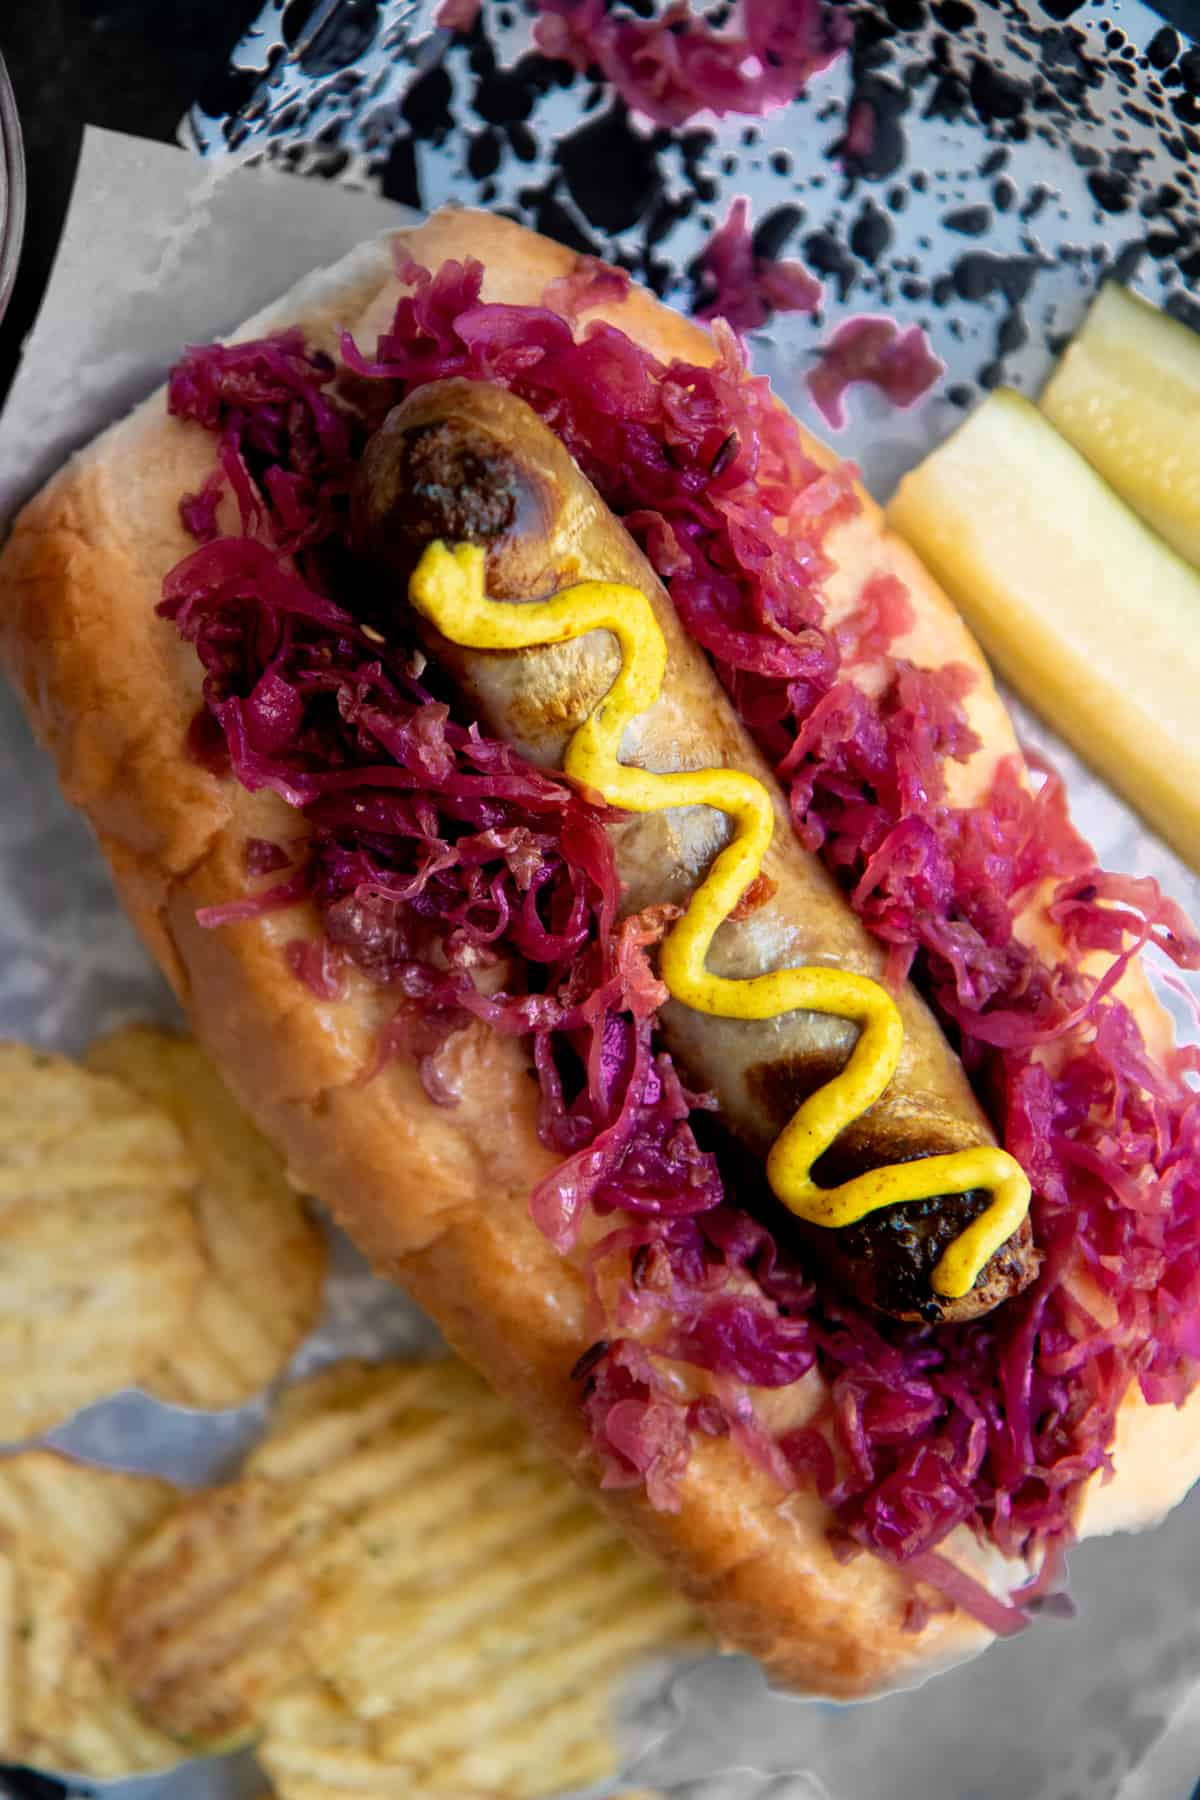 A brat drizzled with mustard sits on a bed of red sauerkraut on top of a bun. Potato chips and a sliced pickle surround the brat.